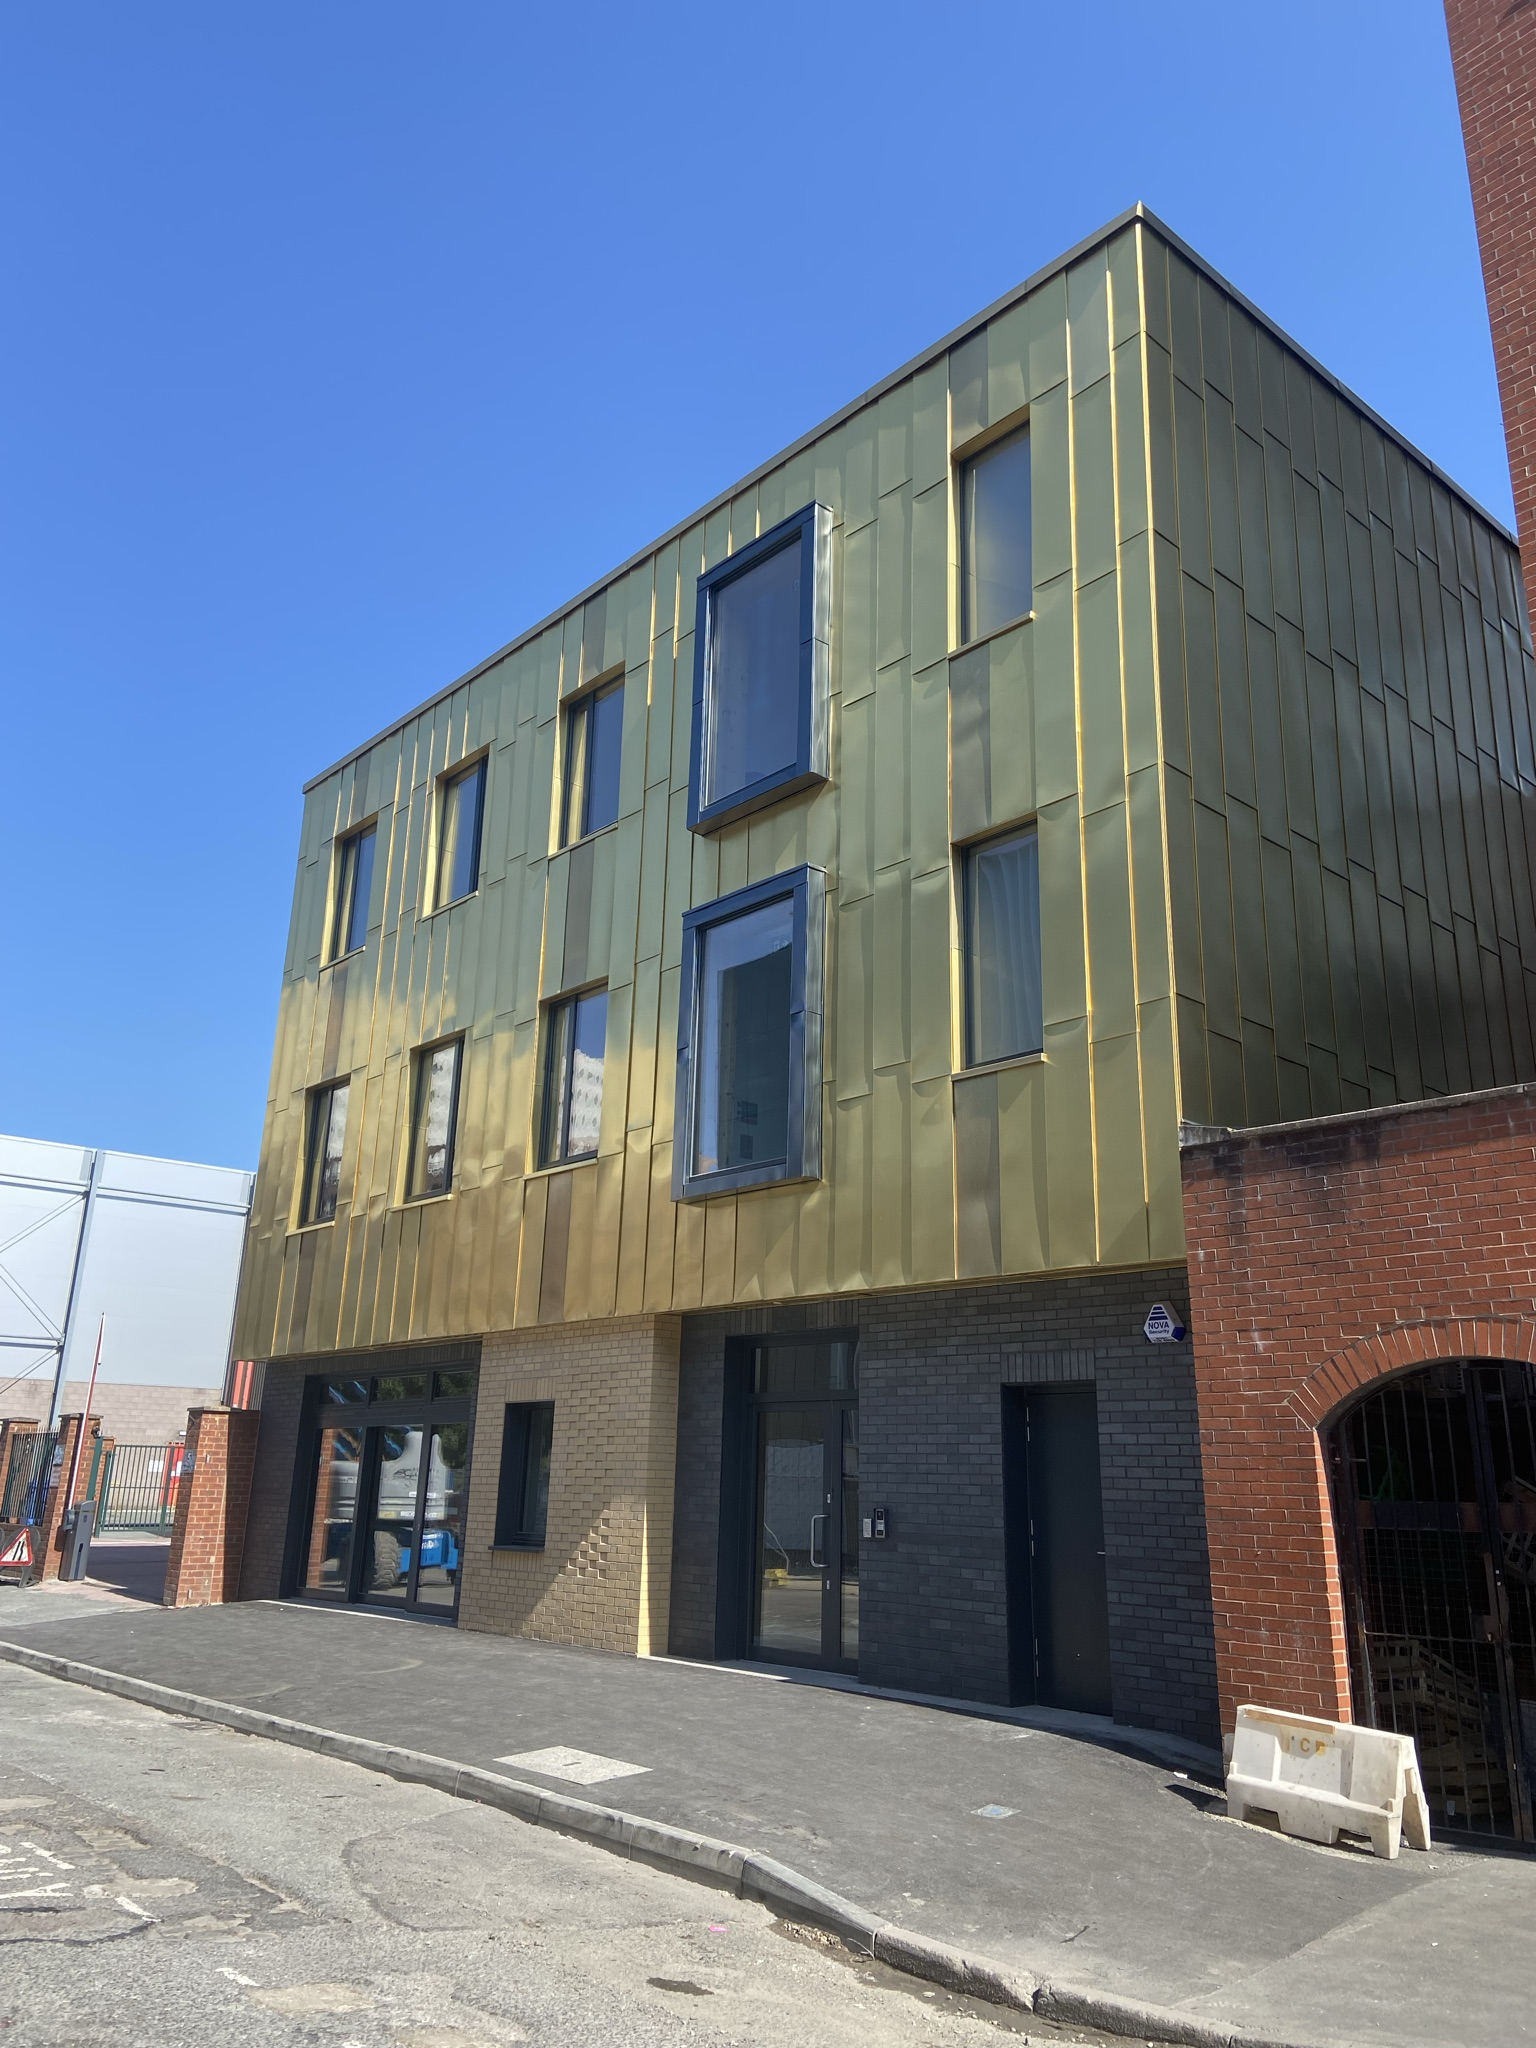 University supports completion of Manchester's new LGBT+ Centre